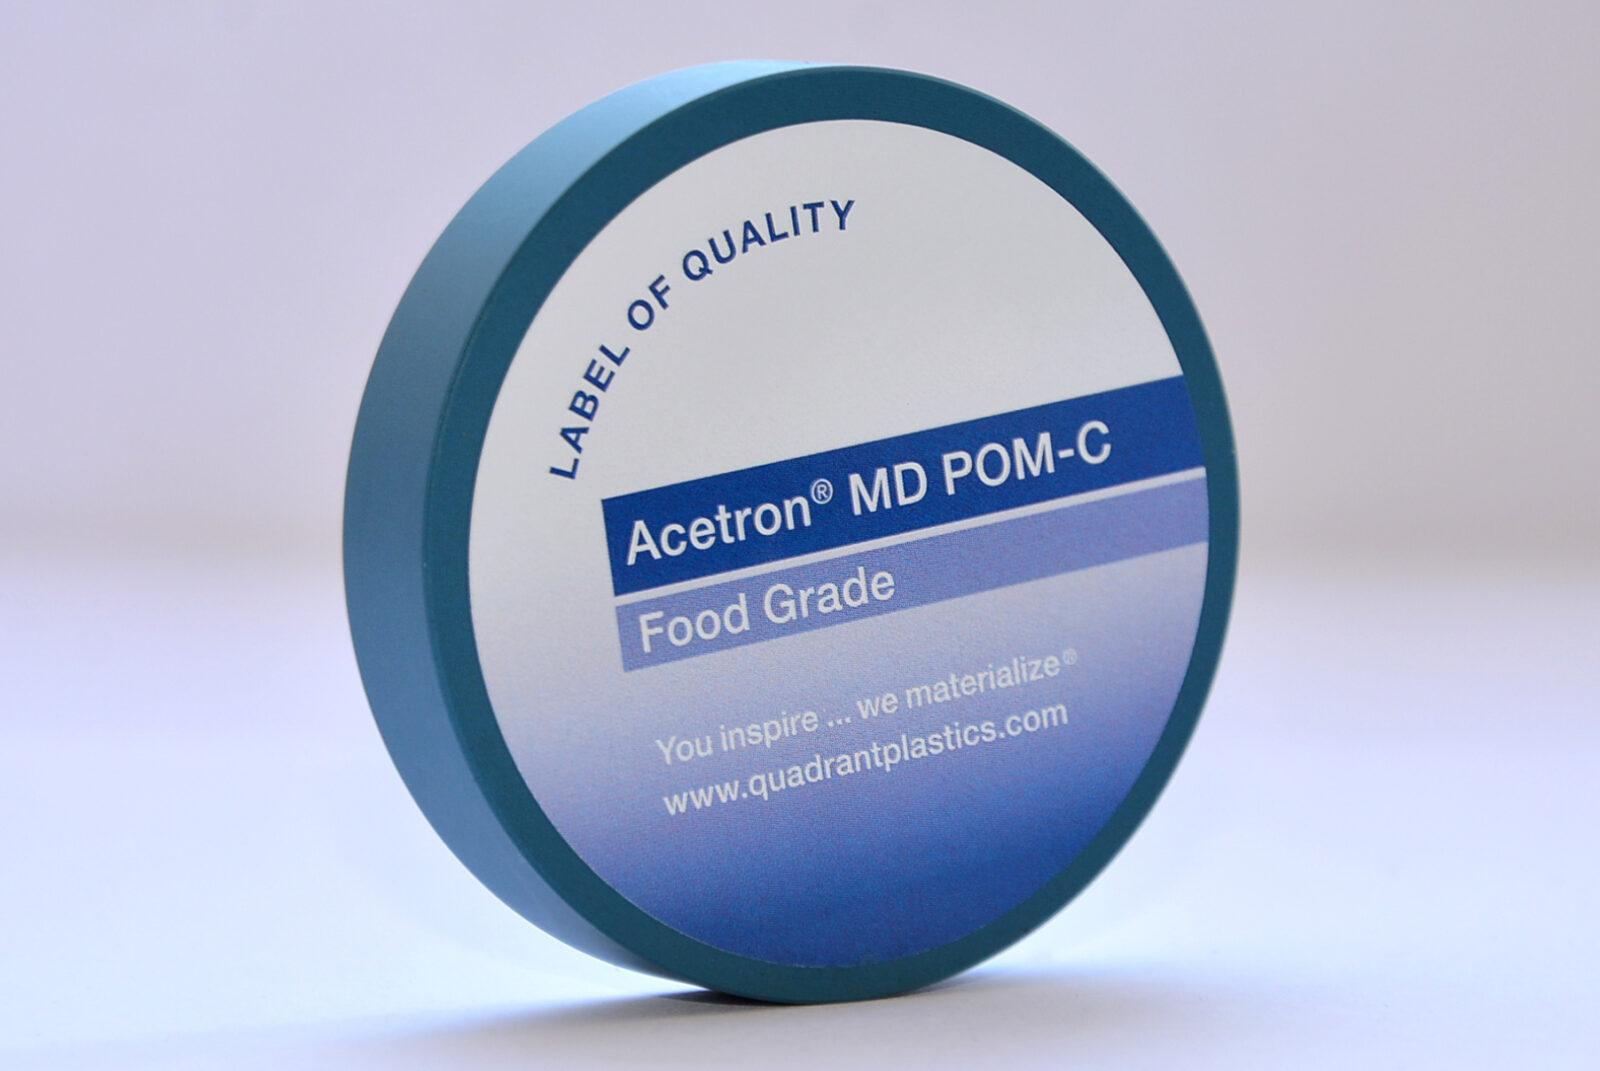 Acetron® MD POM-C